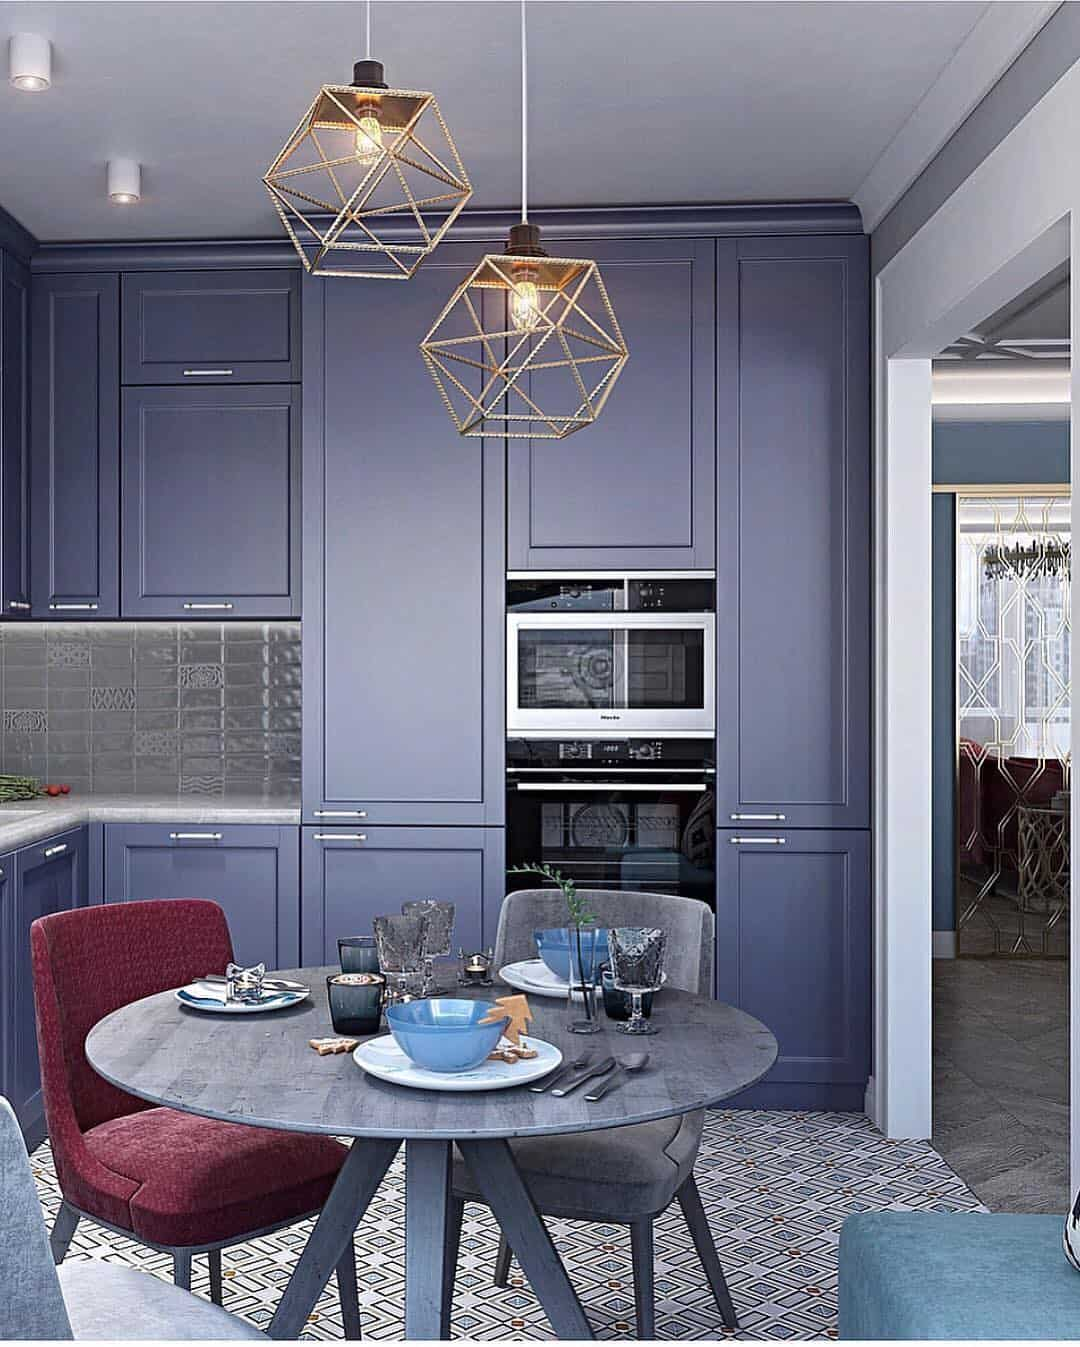 Kitchen Ideas 2020: Recommendations And Fresh Trends Of ...